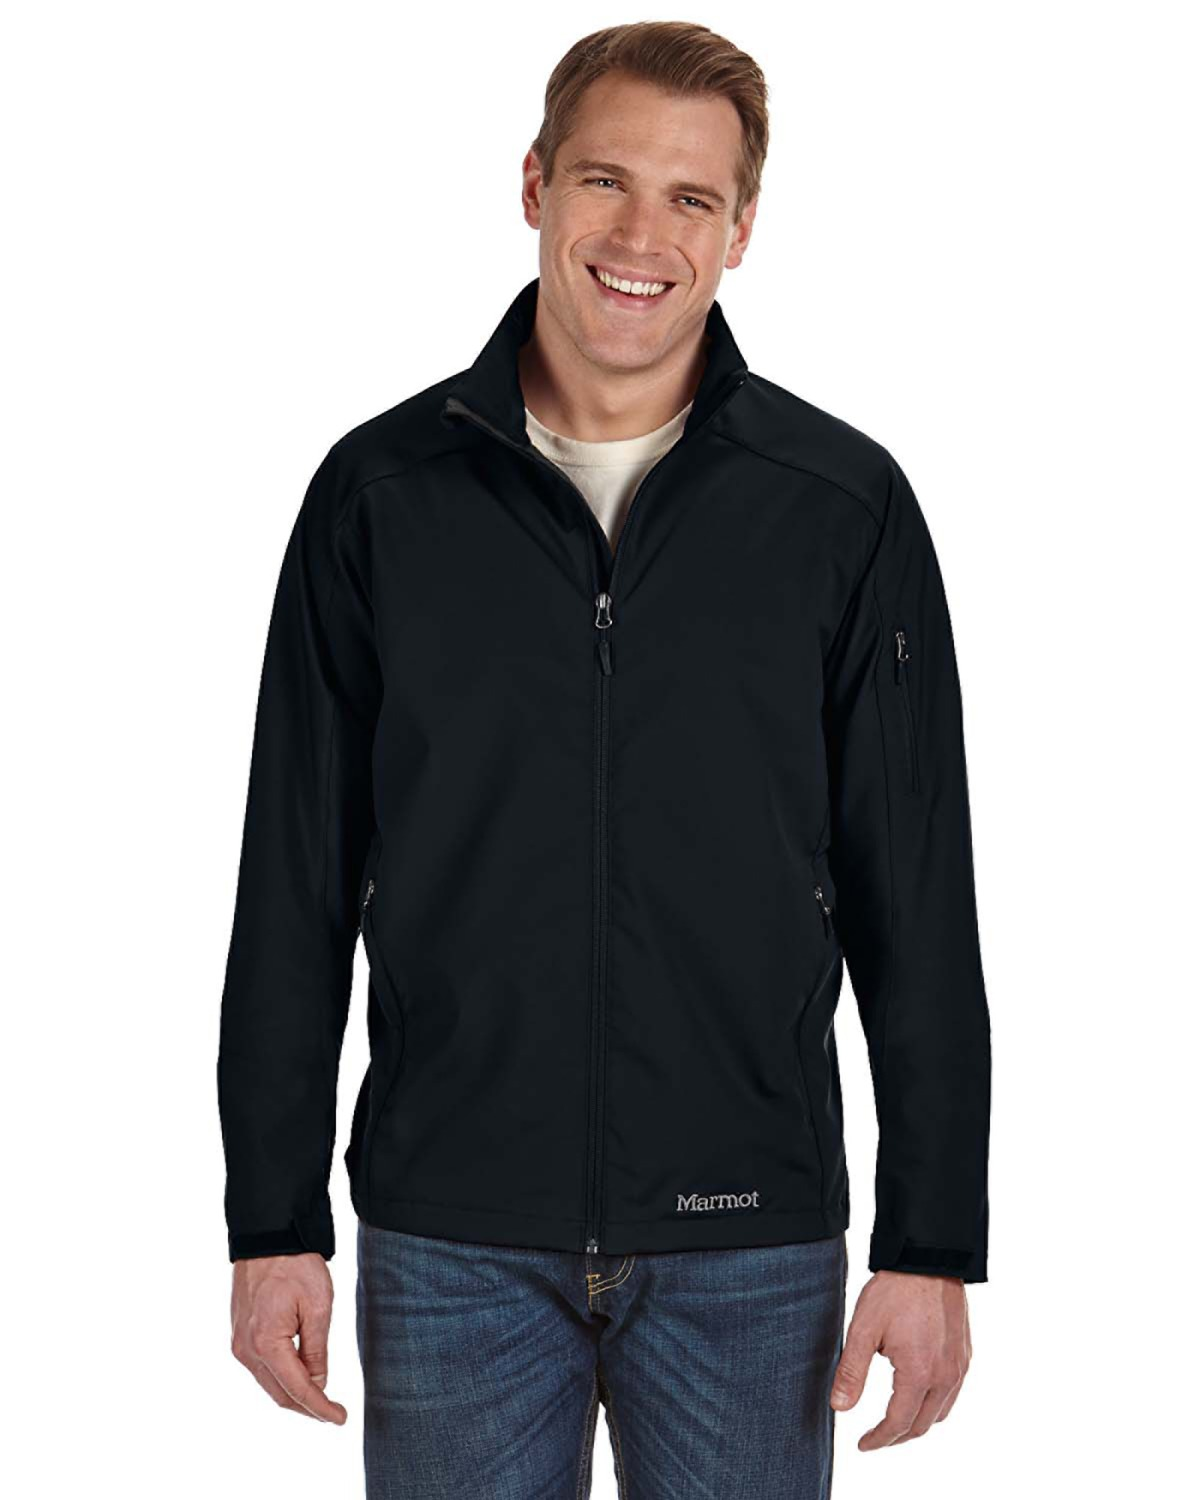 Marmot - 94410 Men's Approach Jacket